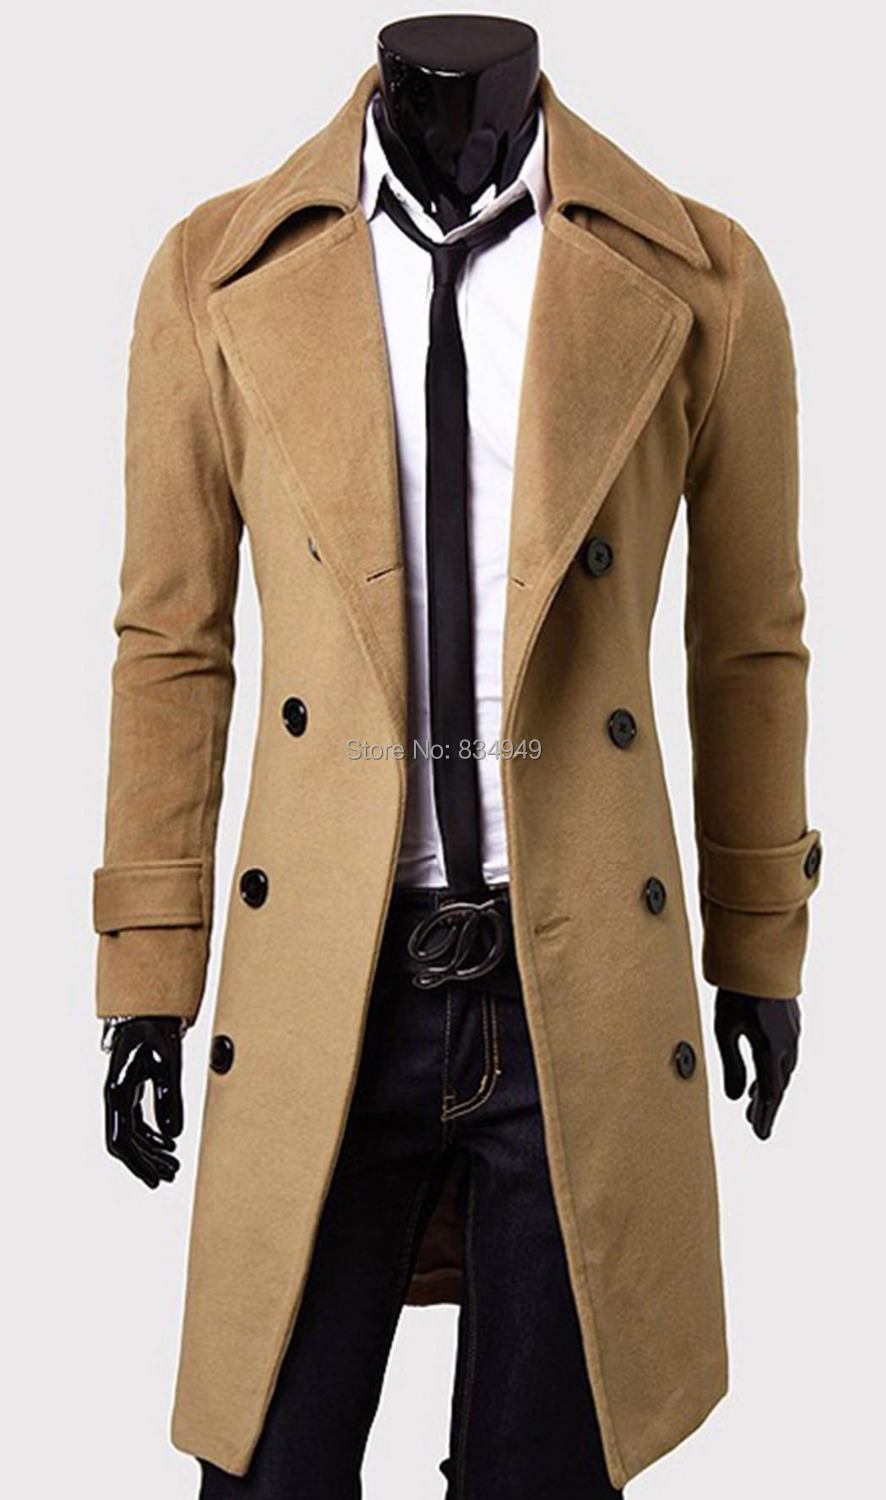 Compare Prices on Trench Coat Men Brown- Online Shopping/Buy Low ...